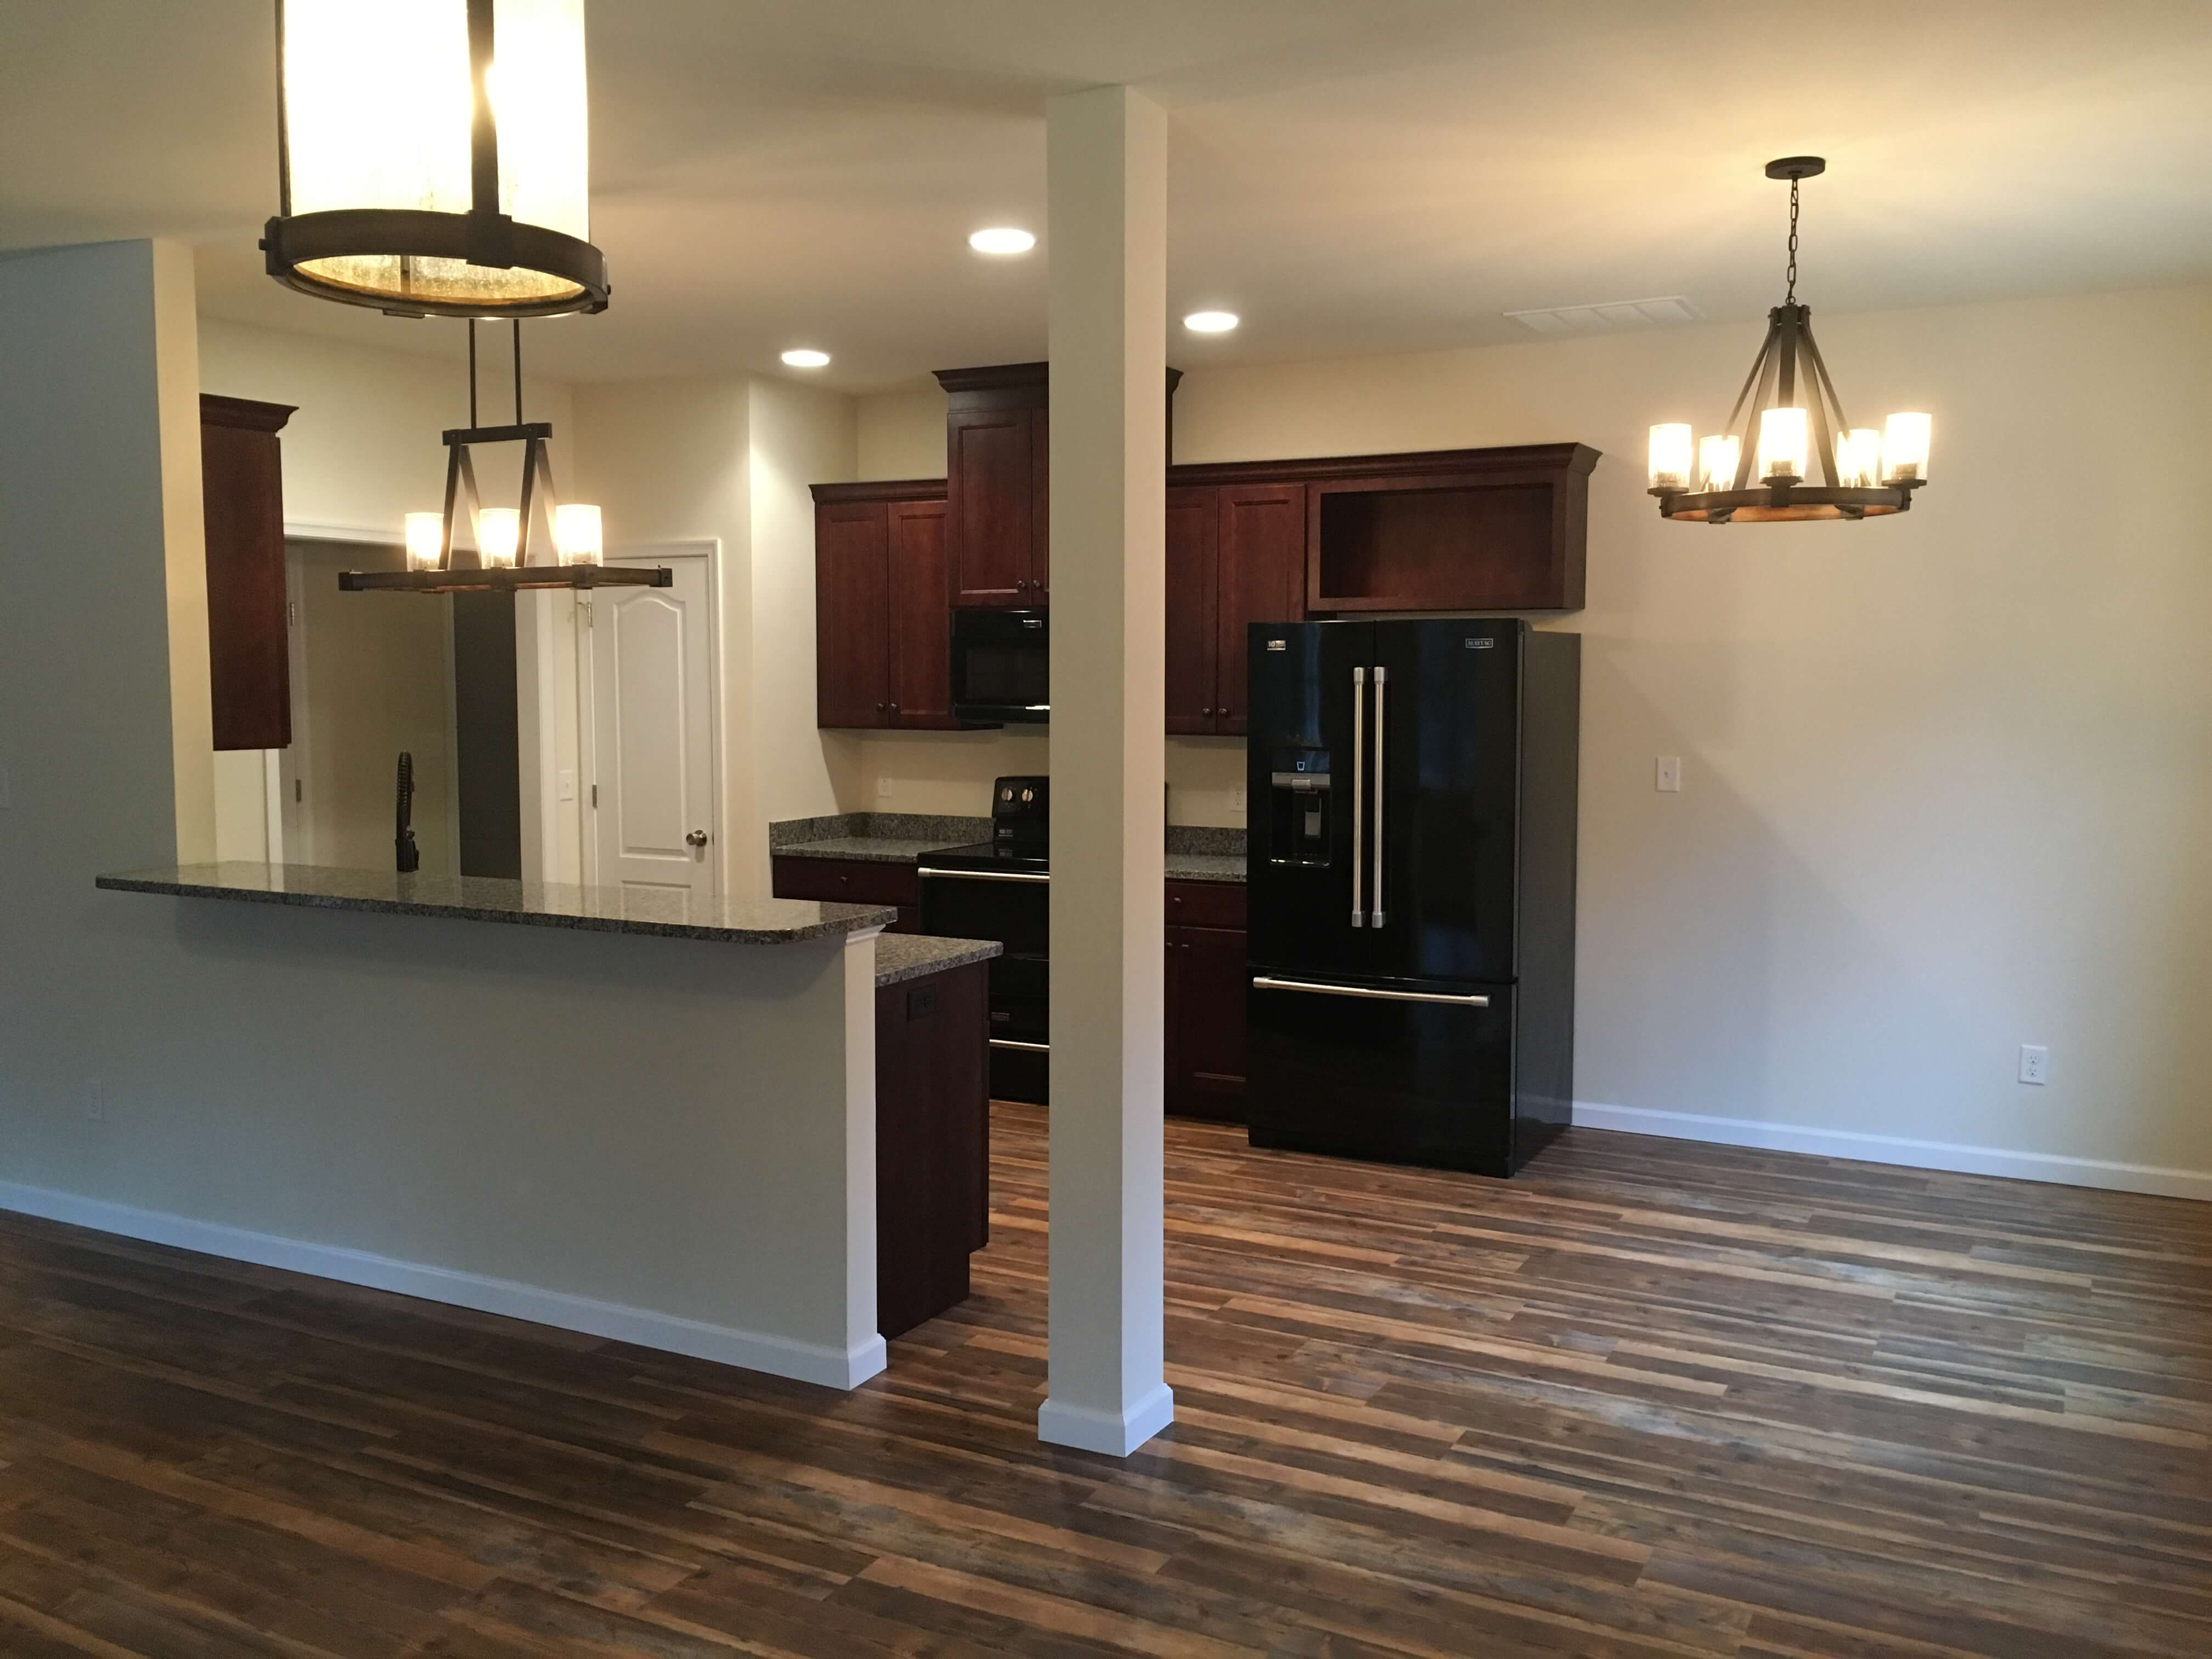 kitchen wood floors column and chandelier